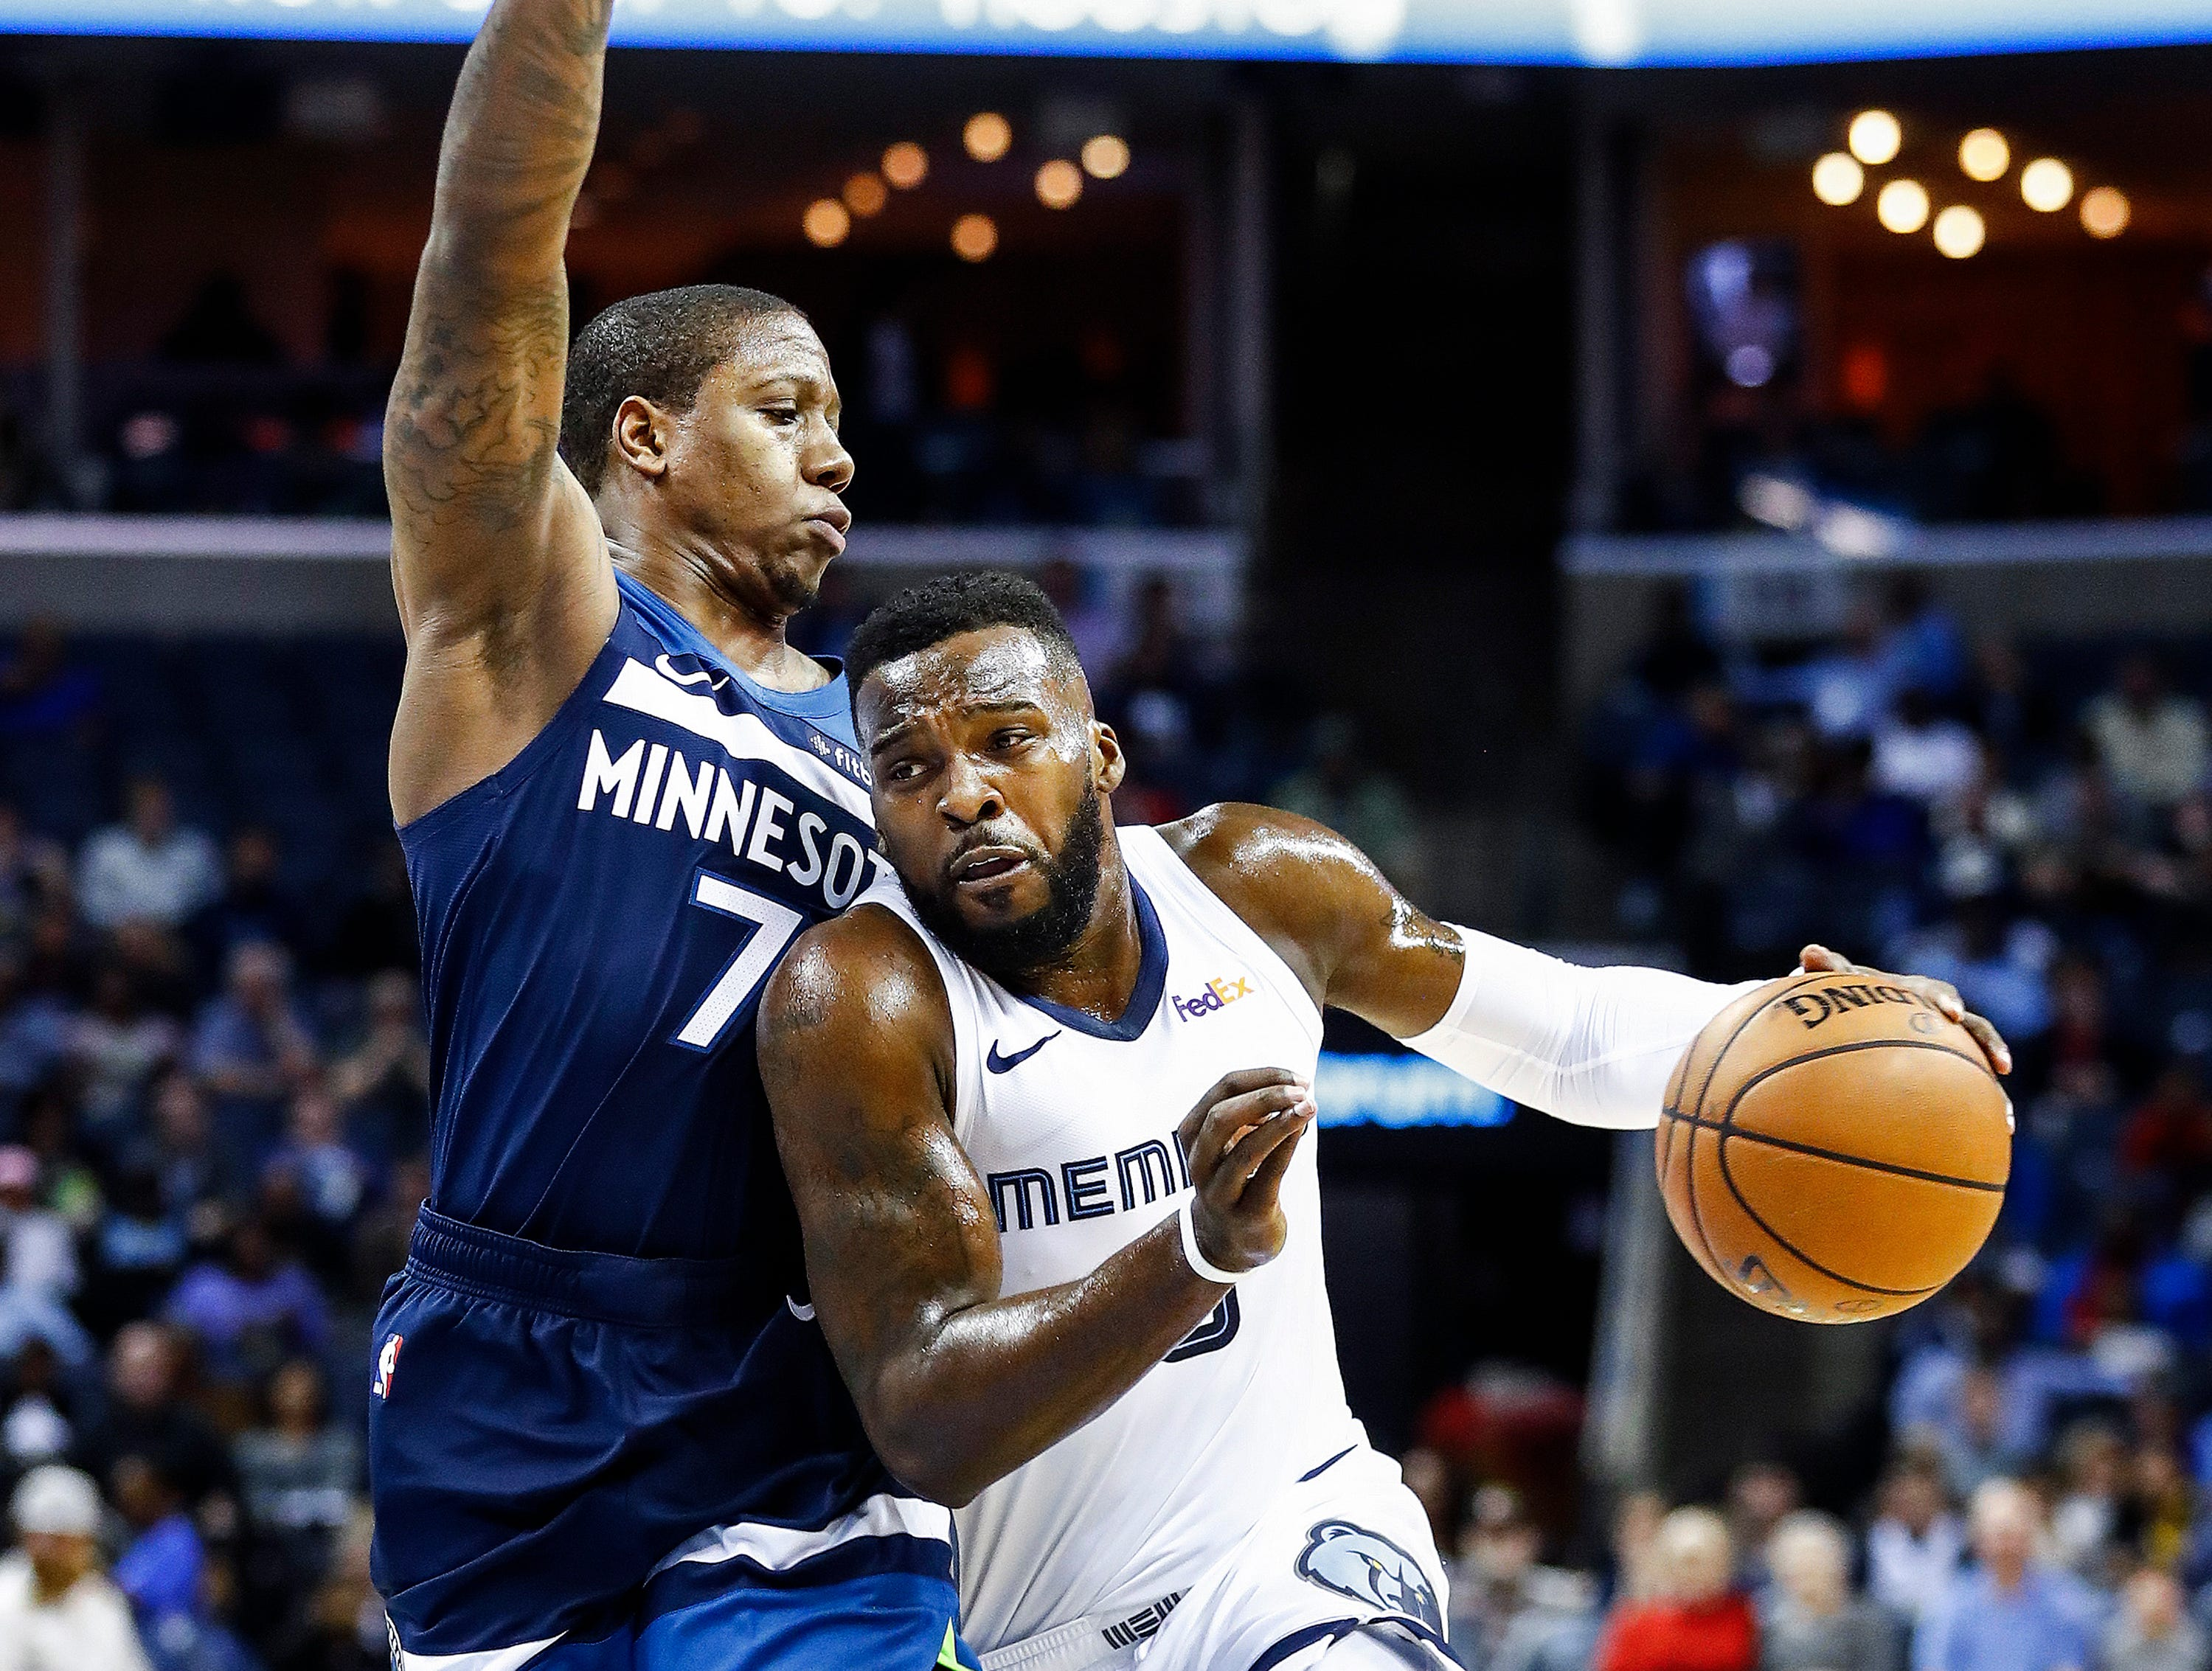 Memphis Grizzlies guard Shelvin Mack (right) drivers the lane against Minnesota Timberwolves defender Isaiah Canaan (left) during action at the FedExForum in Memphis, Tenn., Tuesday, February 5, 2019.